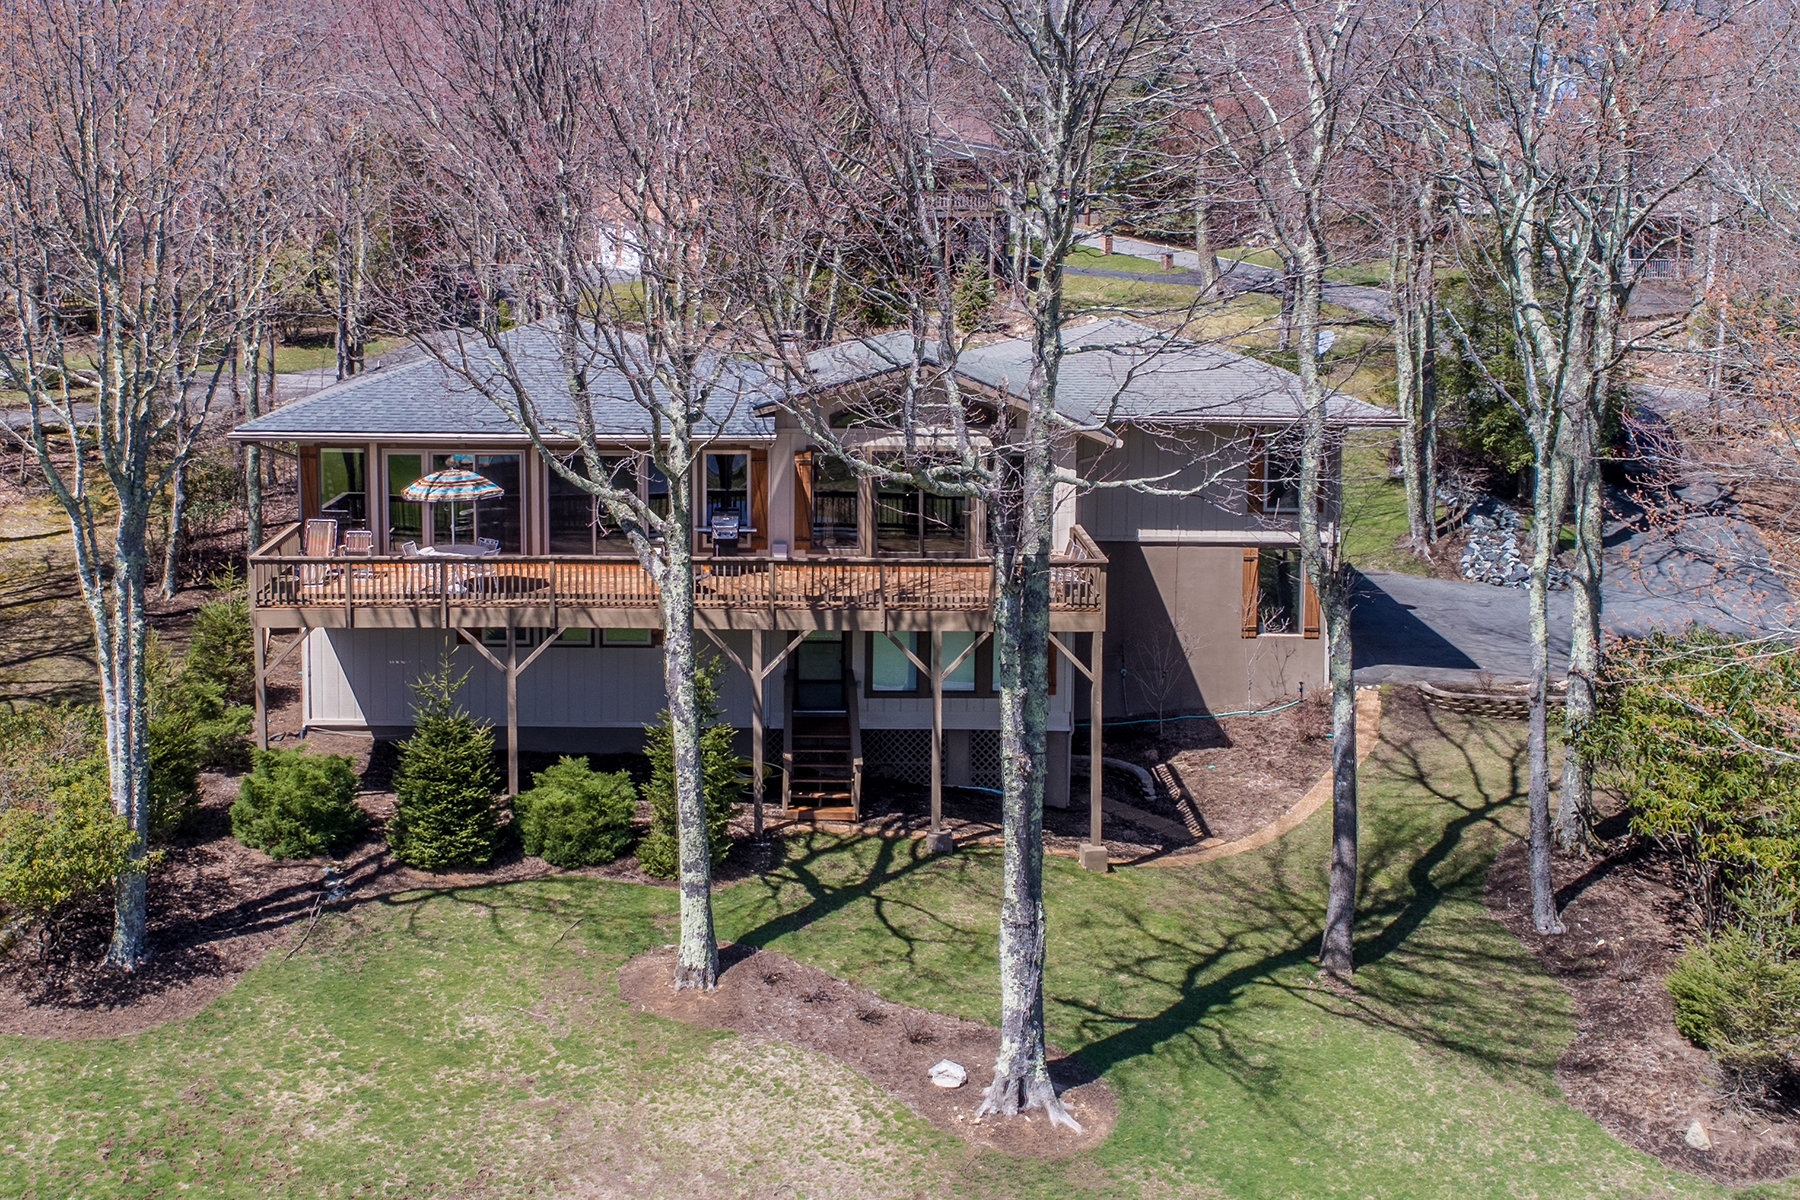 Single Family Home for Sale at BEECH MOUNTAIN 112 Old Field Rd, Beech Mountain, North Carolina 28604 United States